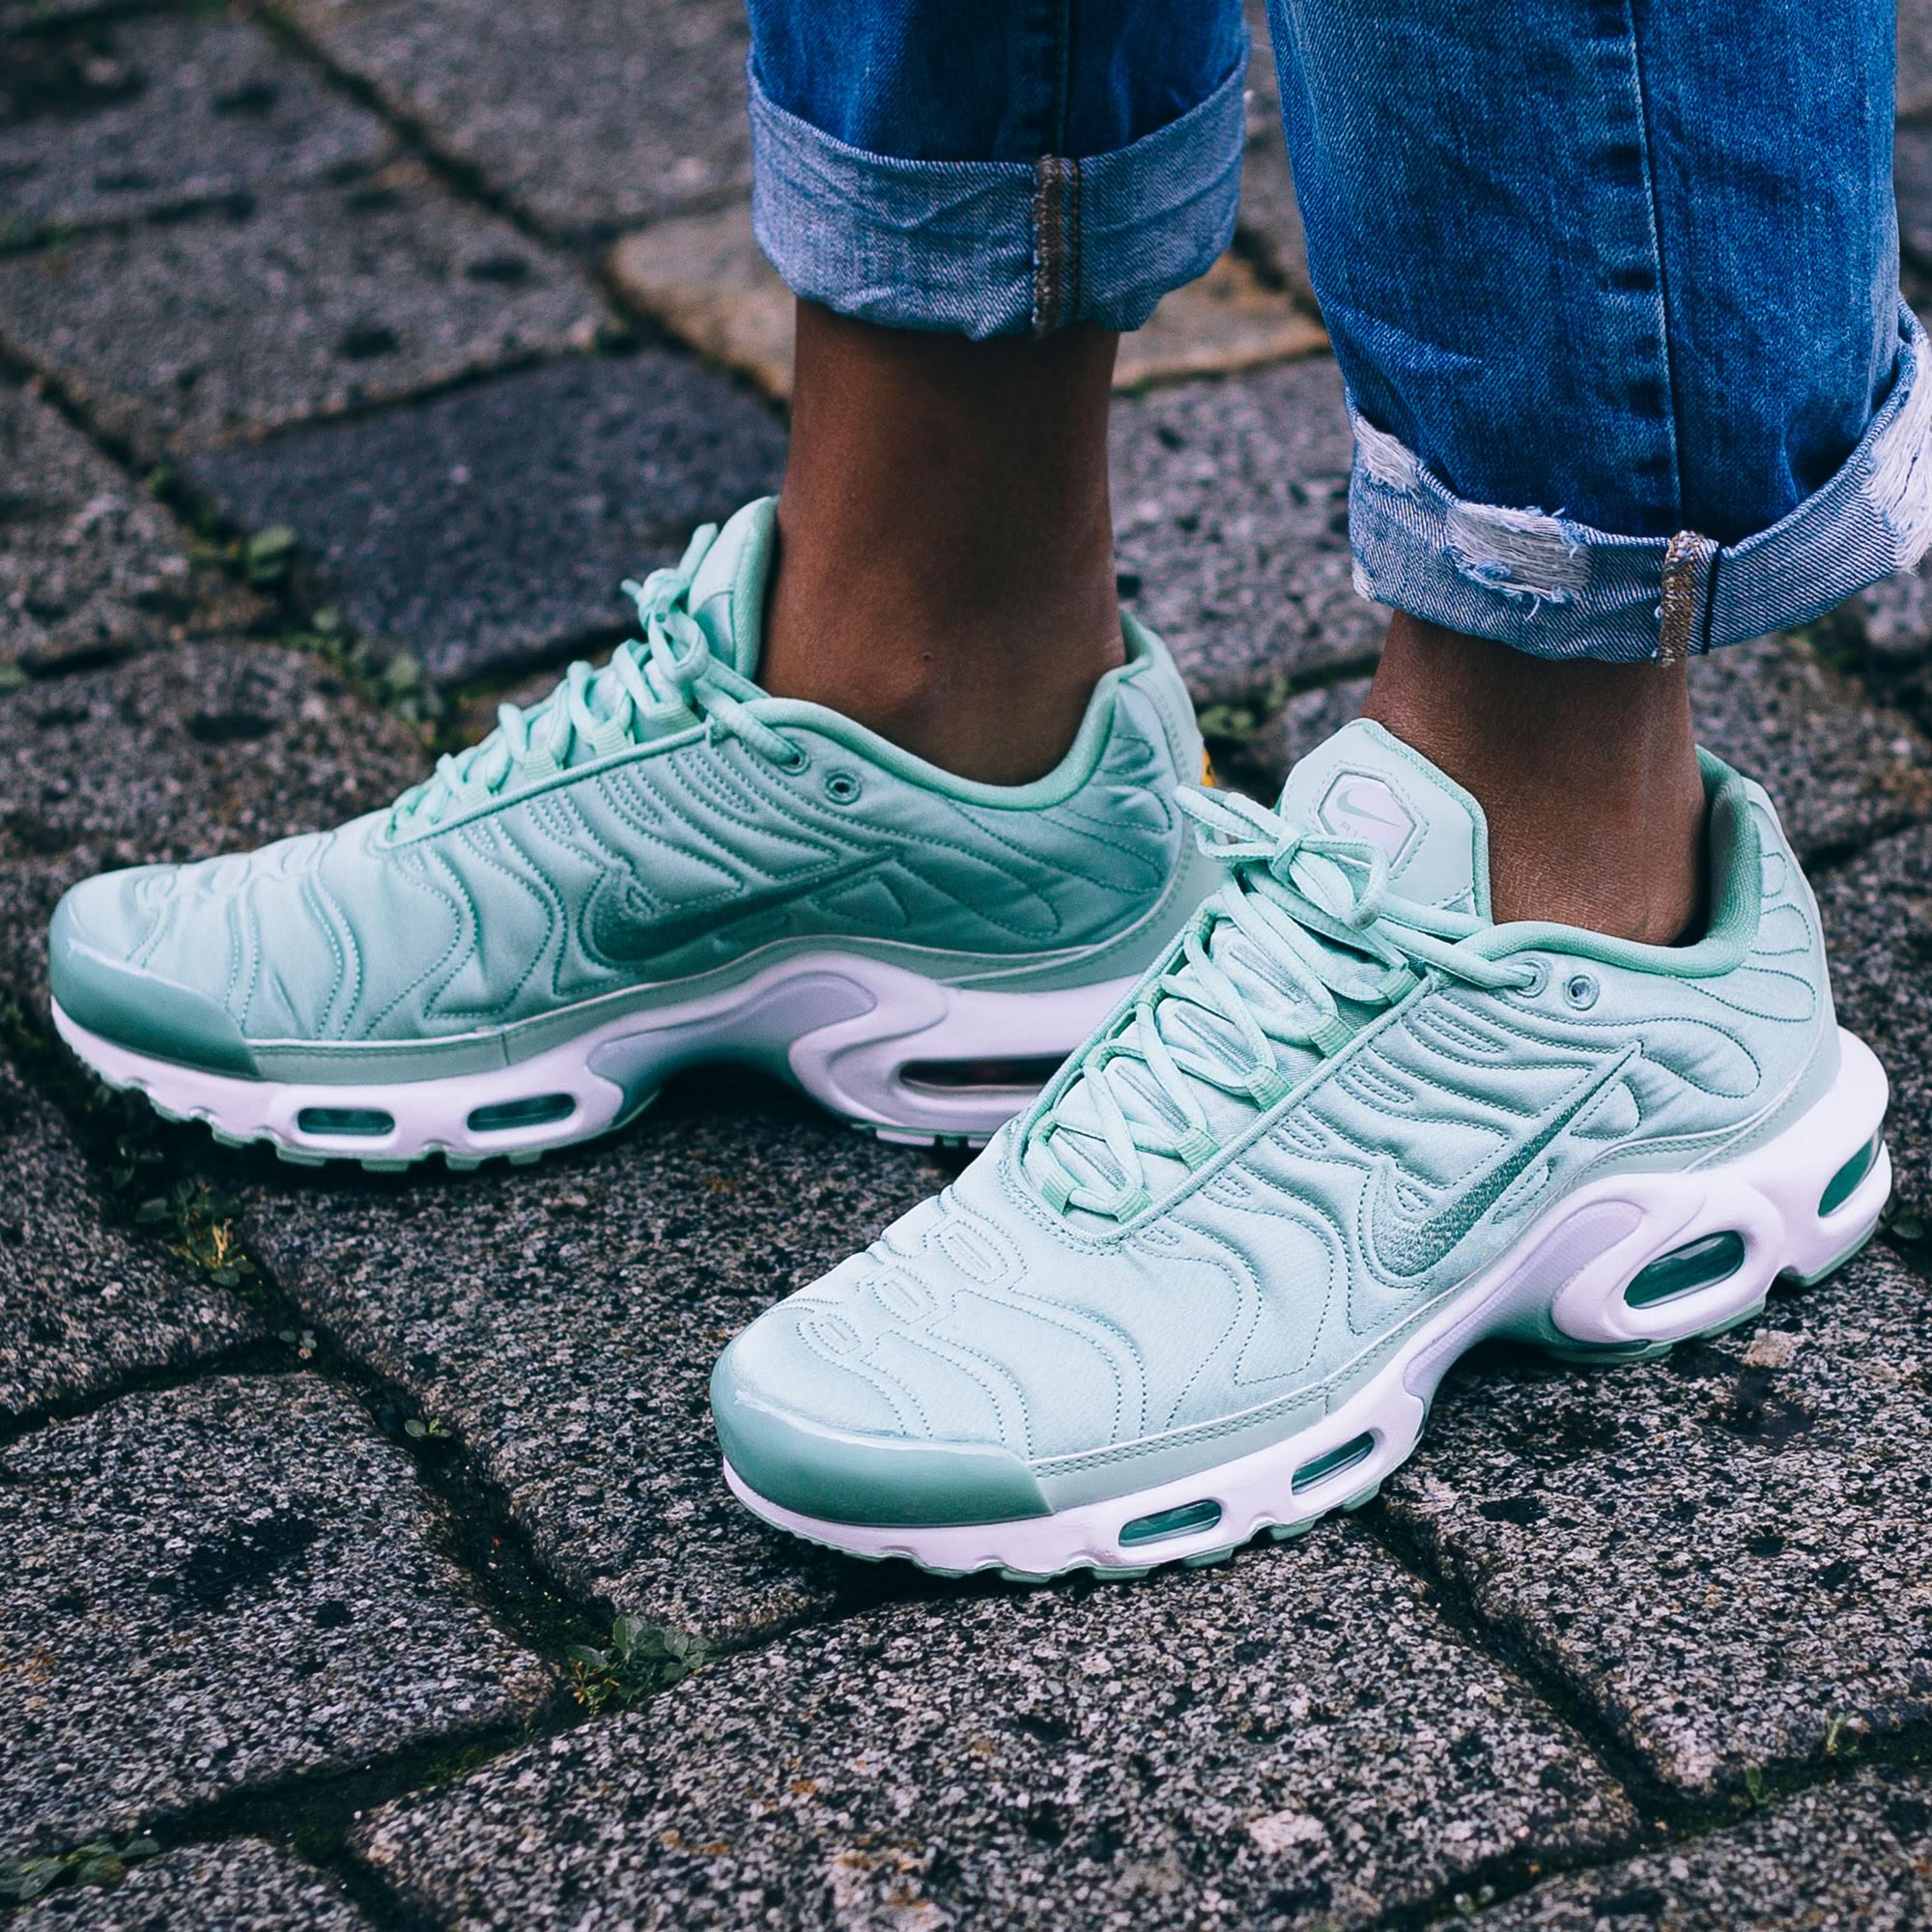 buy popular 631ed b3503 An On-Feet Look At The Nike Air Max Plus Satin Pack ...